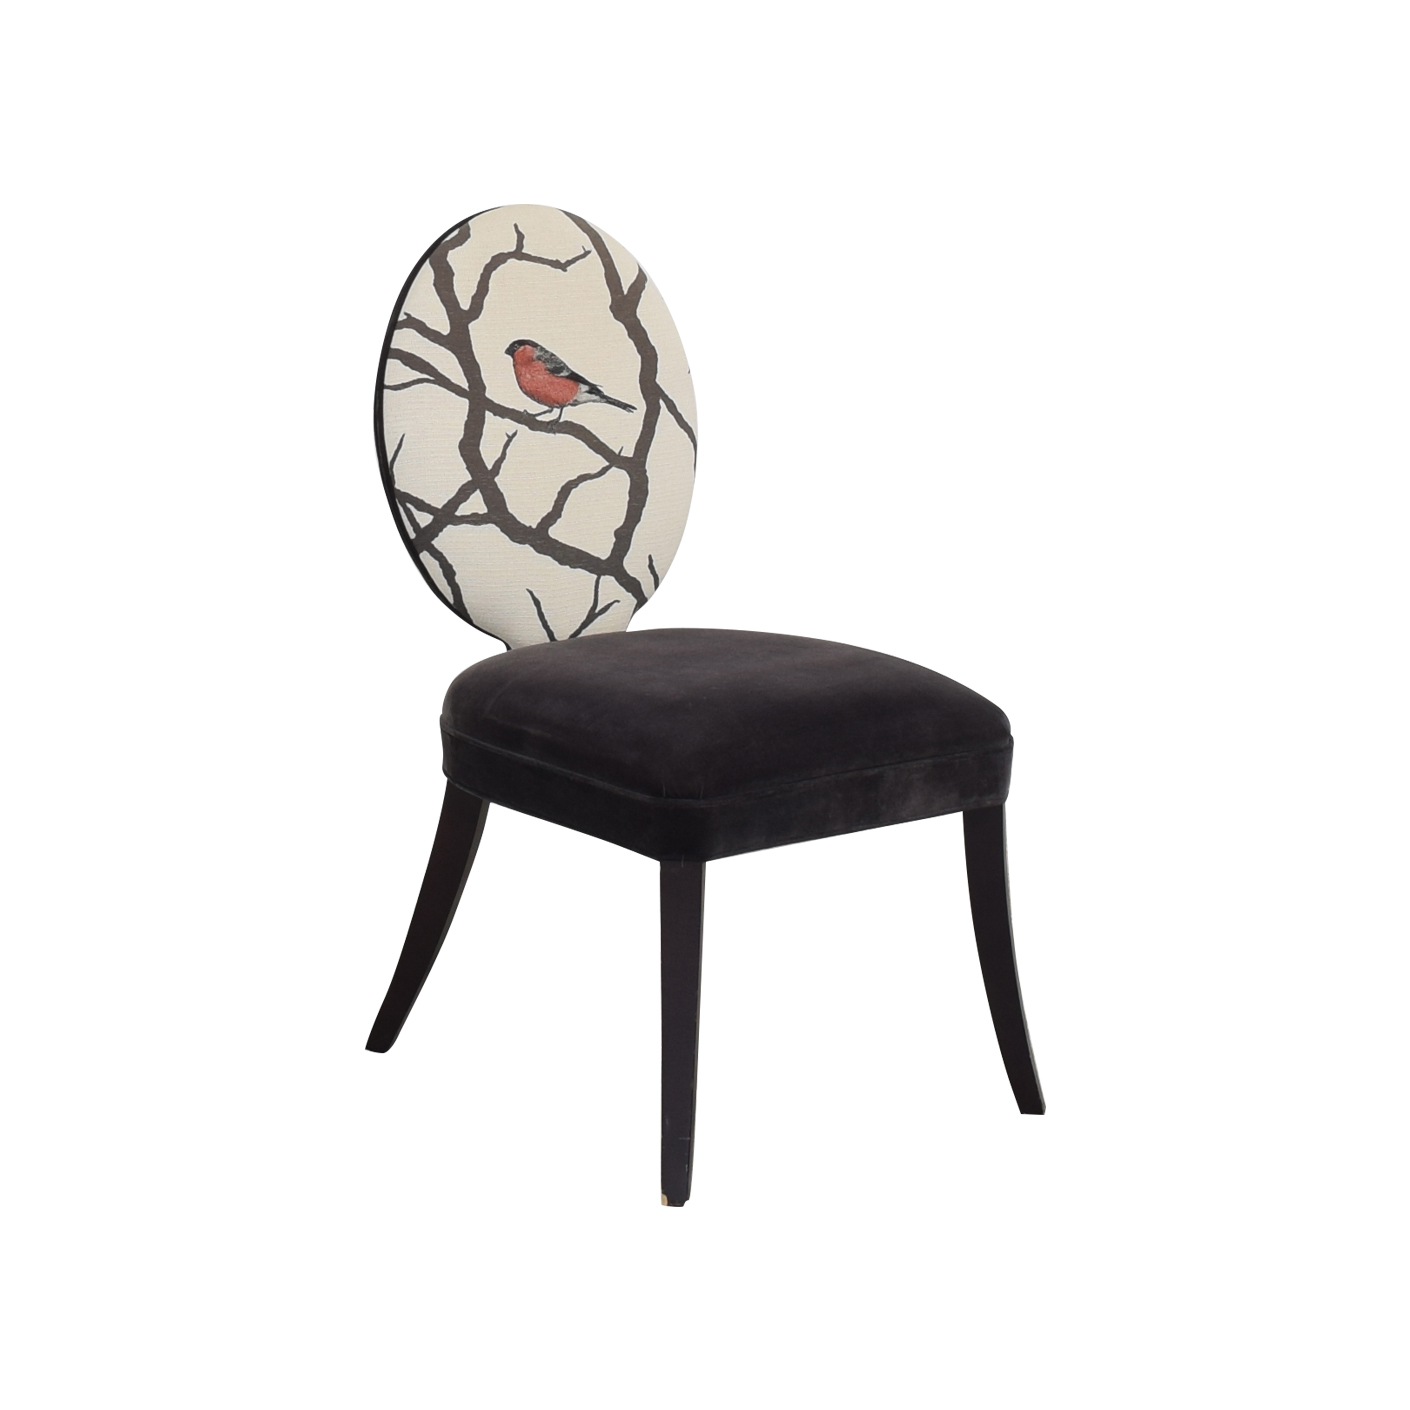 Mitchell Gold + Bob Williams Mitchell Gold + Bob Williams Oval Back Side Chair with Bird Print ma